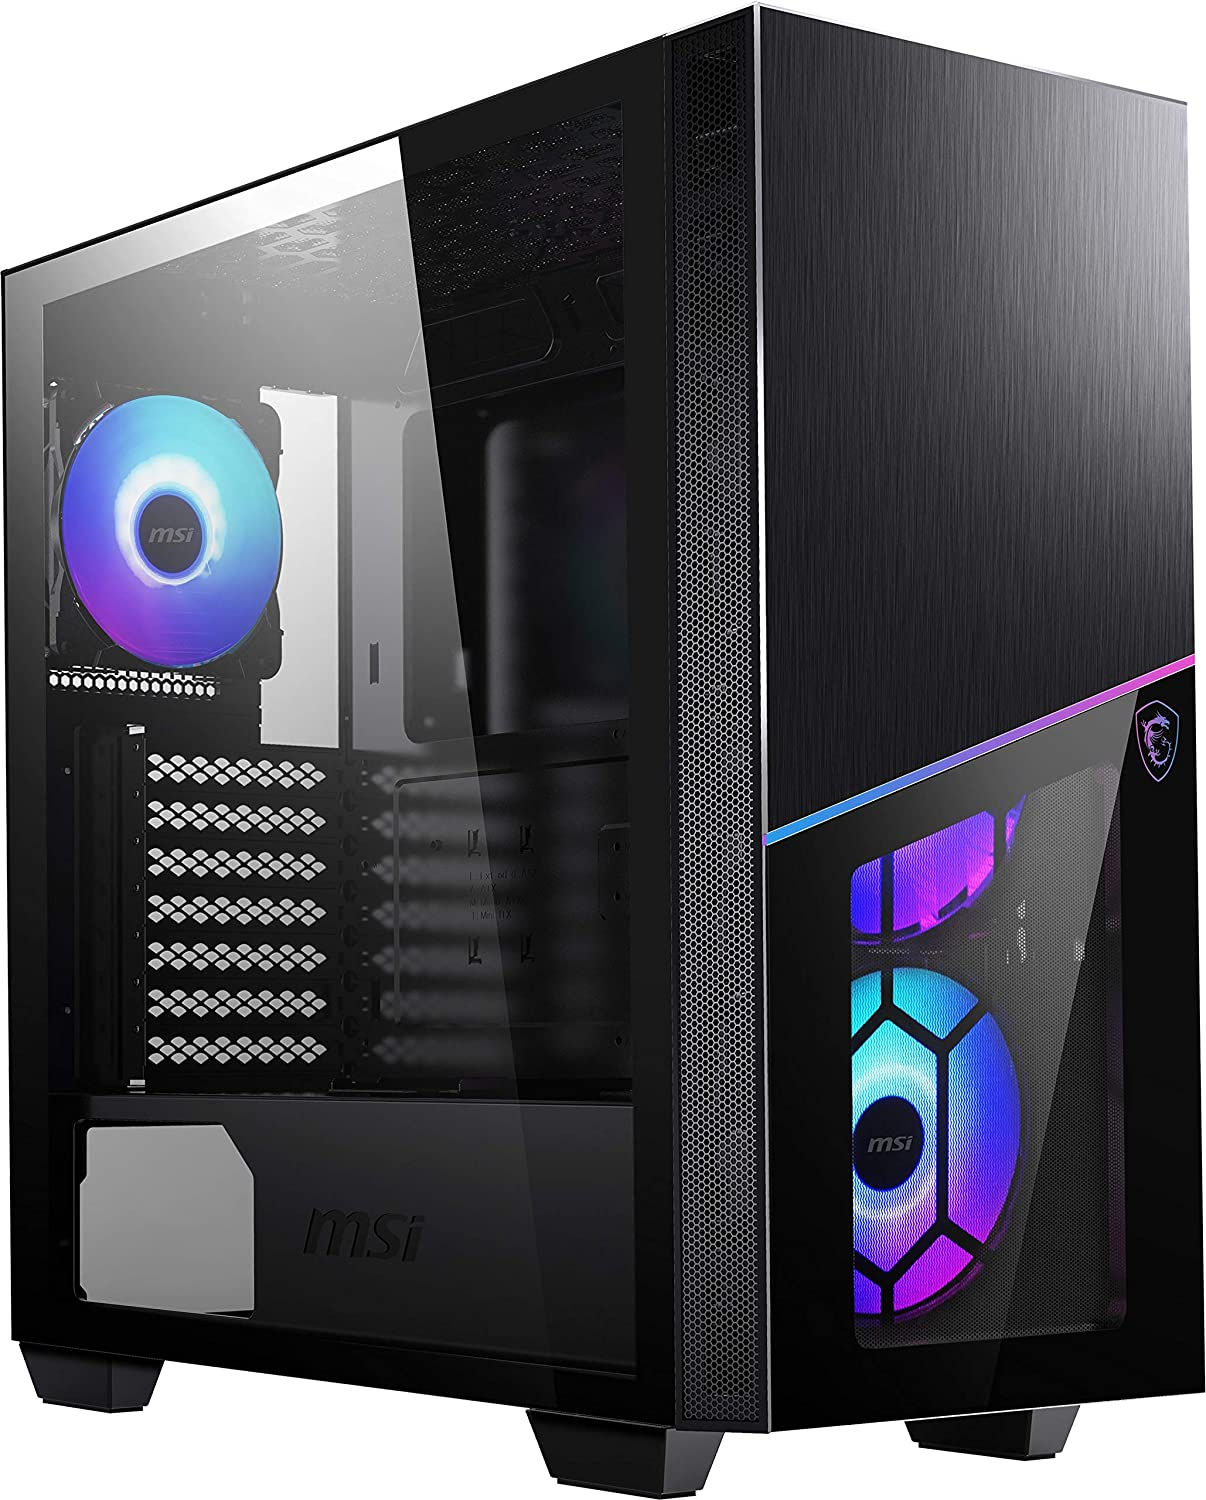 MSI Premium Mid-Tower PC Gaming Case – Tempered Glass Side Panel – RGB 120mm Fan – Liquid Cooling Support up to 360mm Radiator x 1 – Cable Management System – MPG SEKIRA 100R